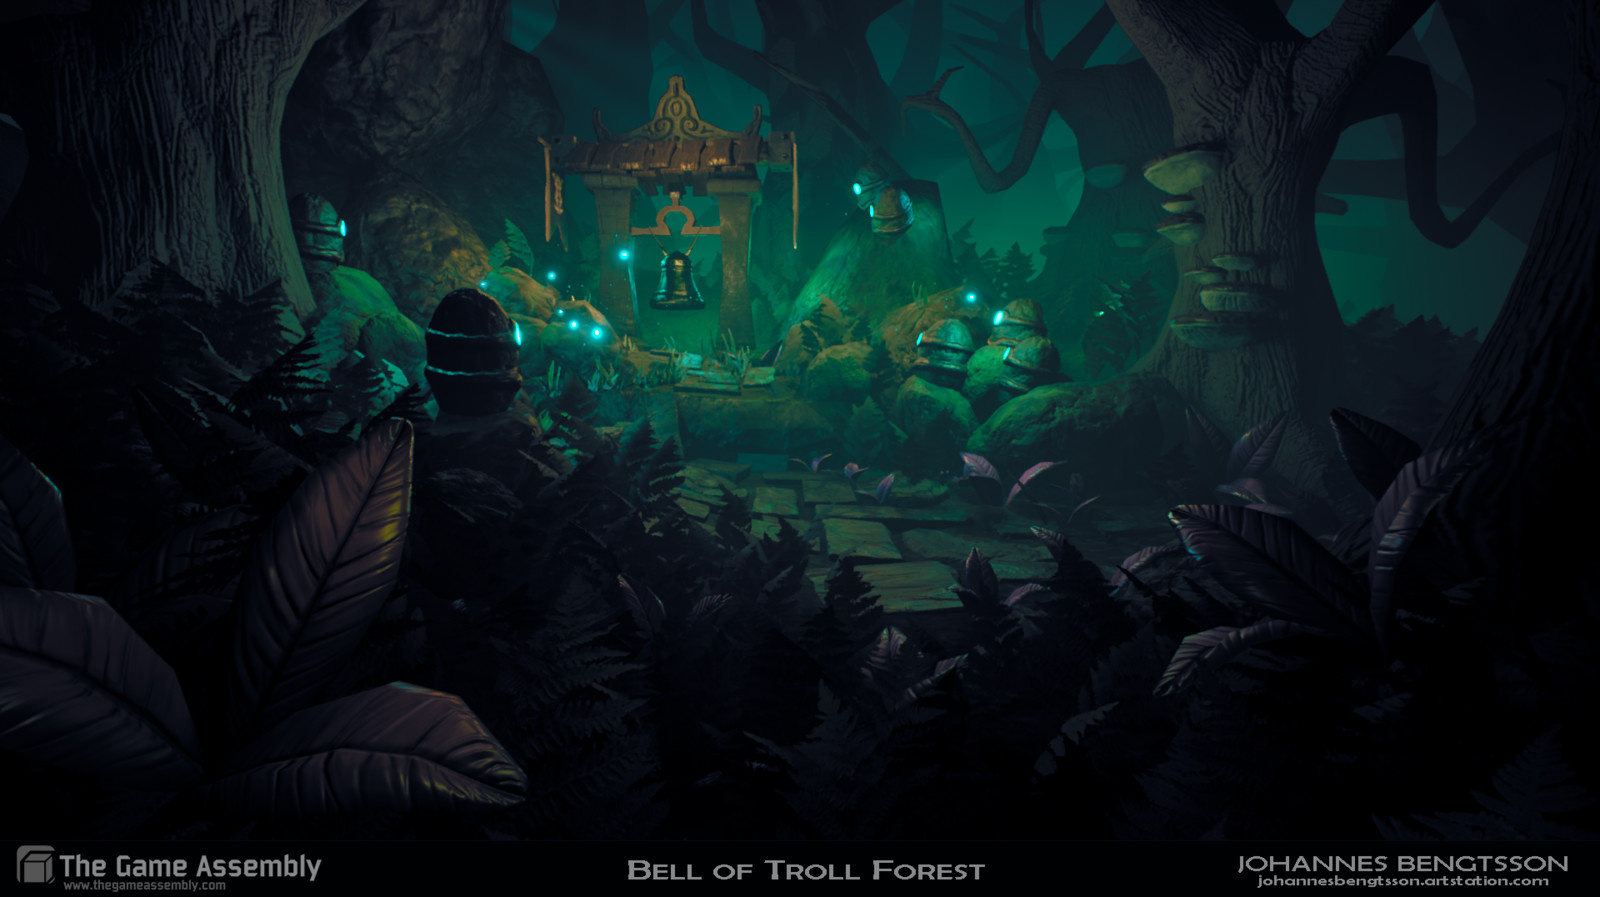 Bell of Troll Forest